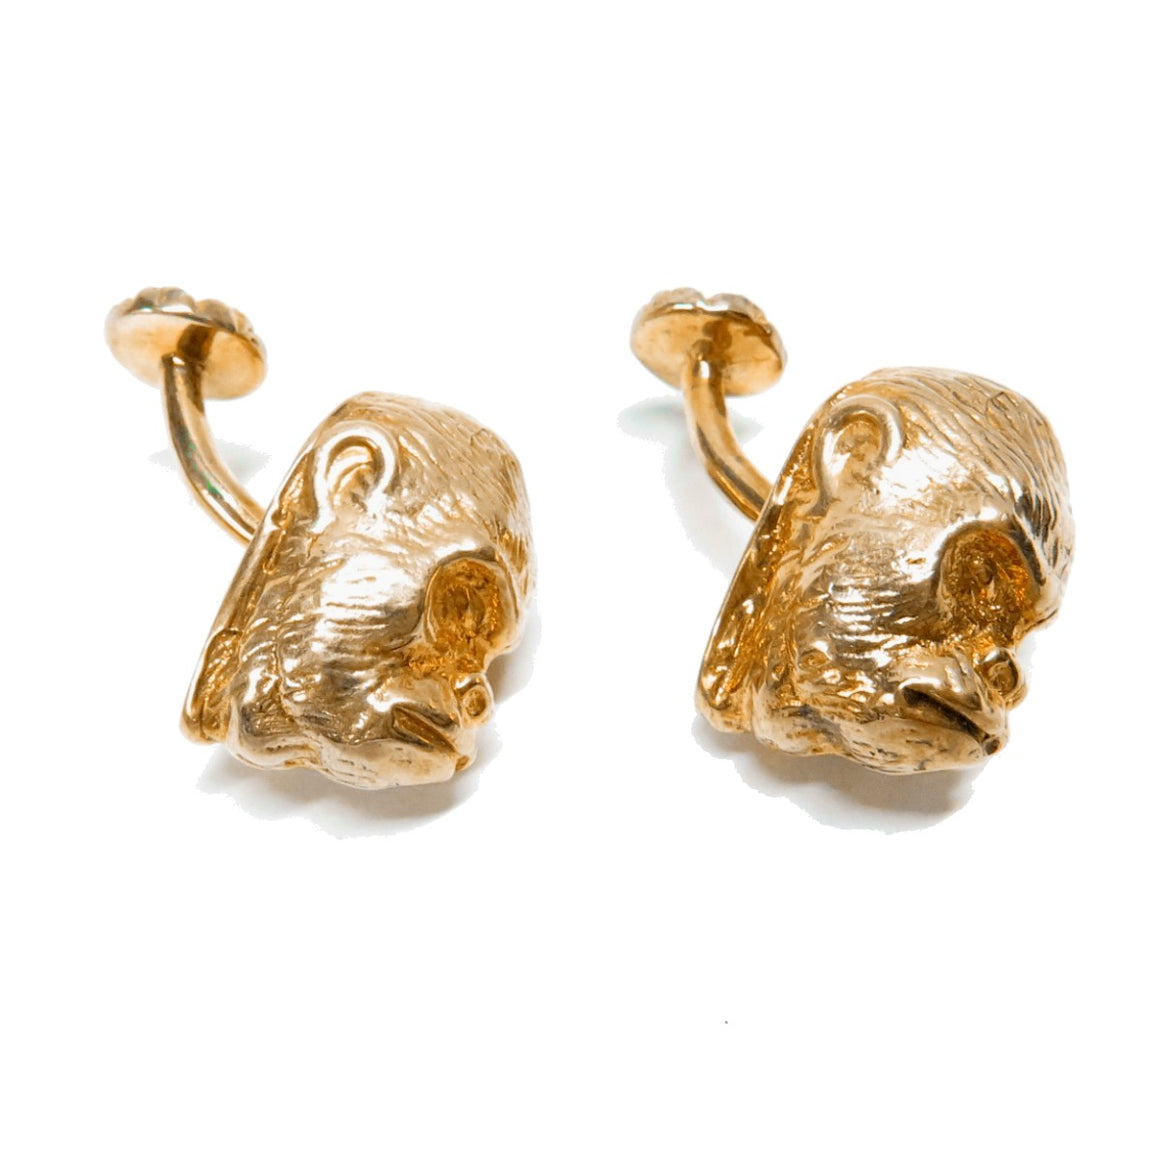 A pair of cufflinks  in the form of a Gorilla Heds. They are made of Sterling Silver and 24ct N18 Polished Gold.